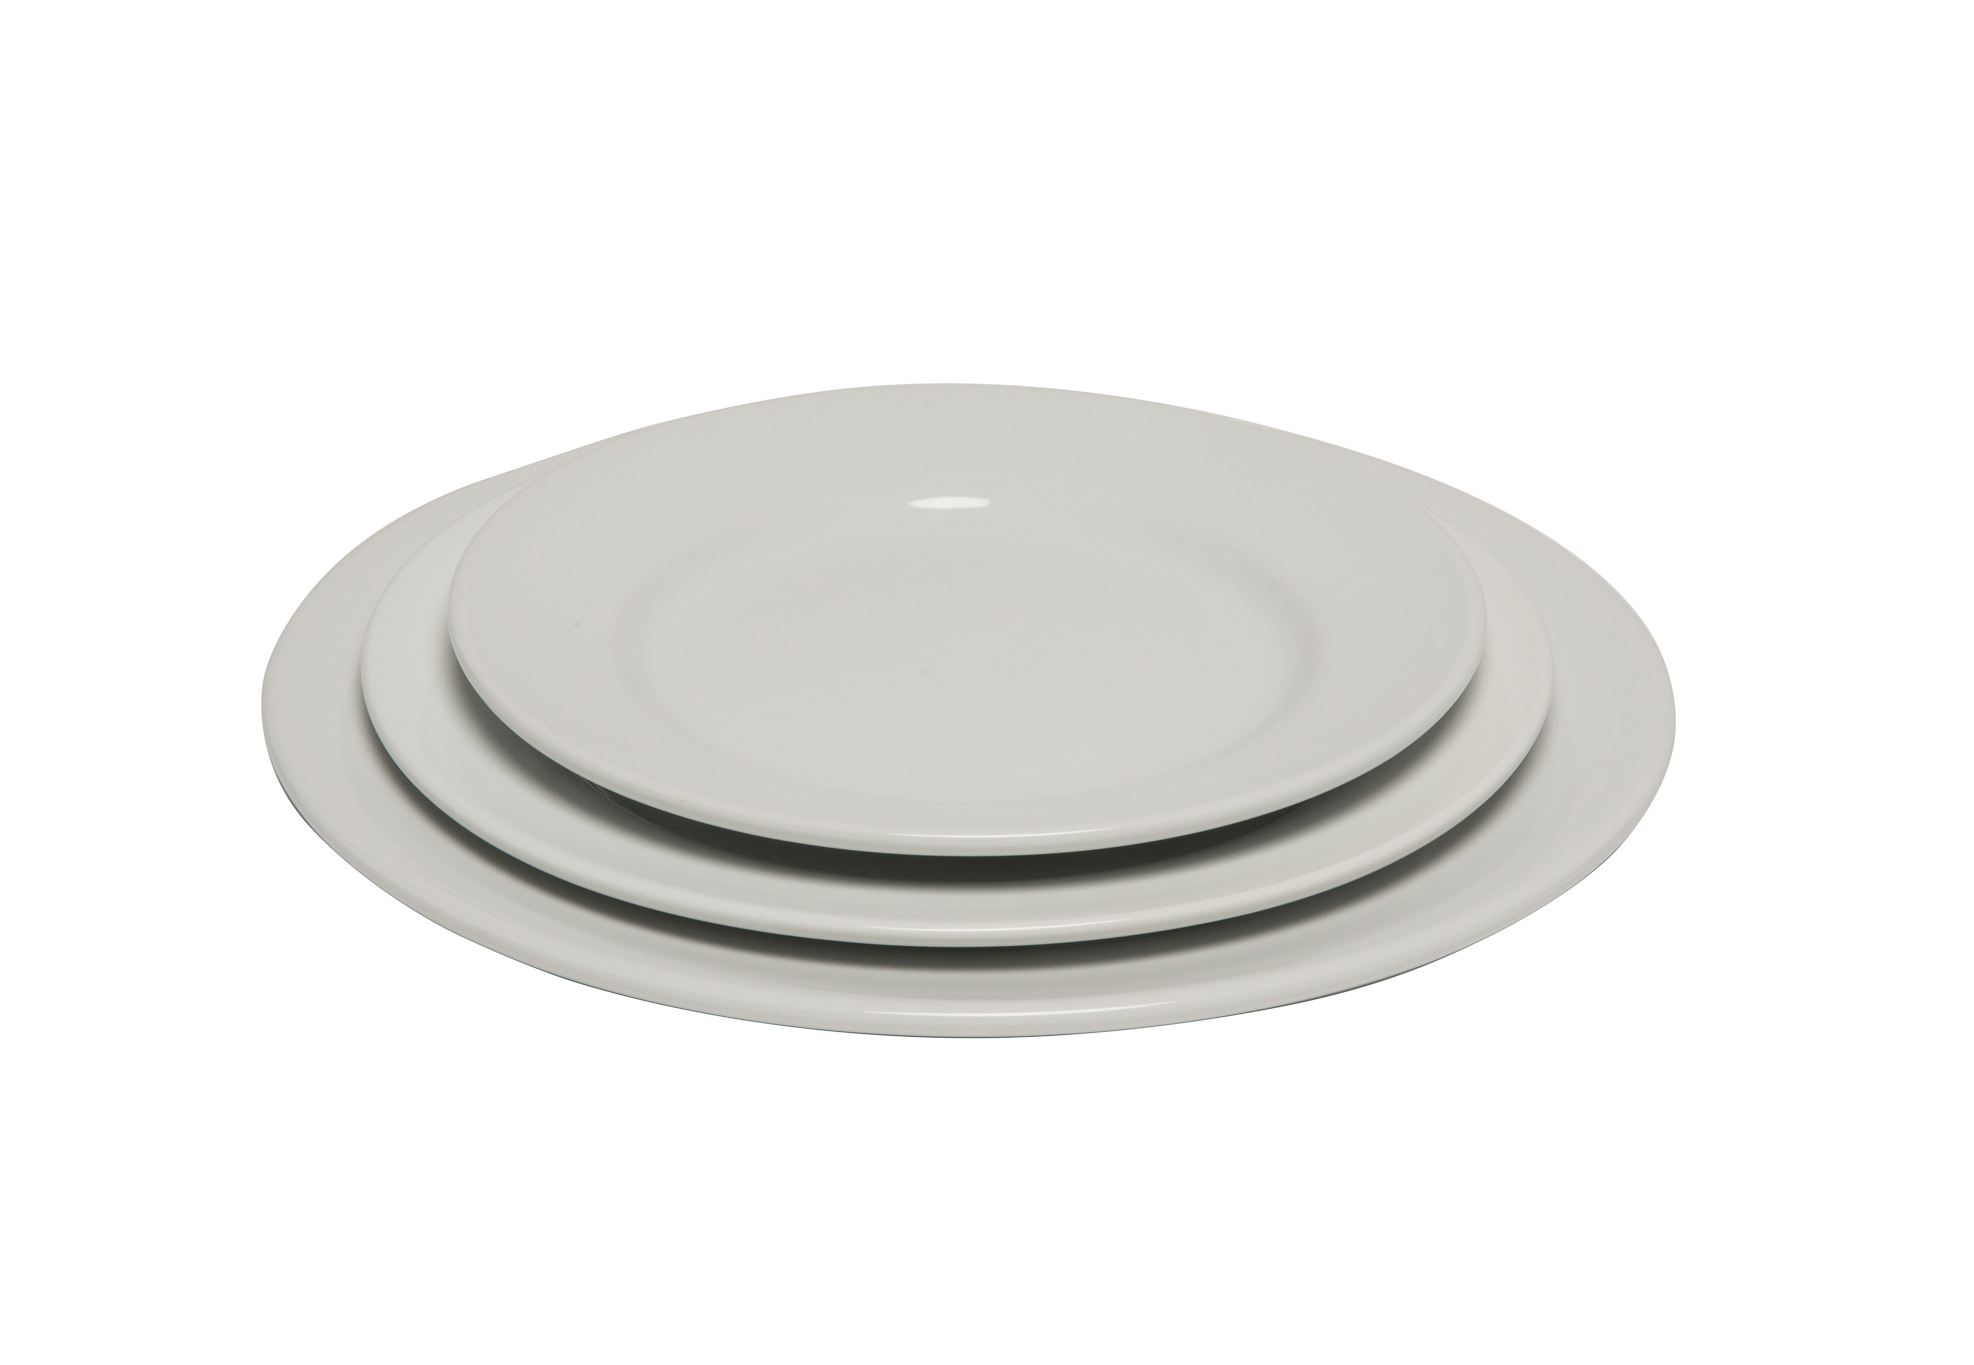 silk-estate-marquee-weddings-and-events-styling-and-hire-crockery-side-plate-new